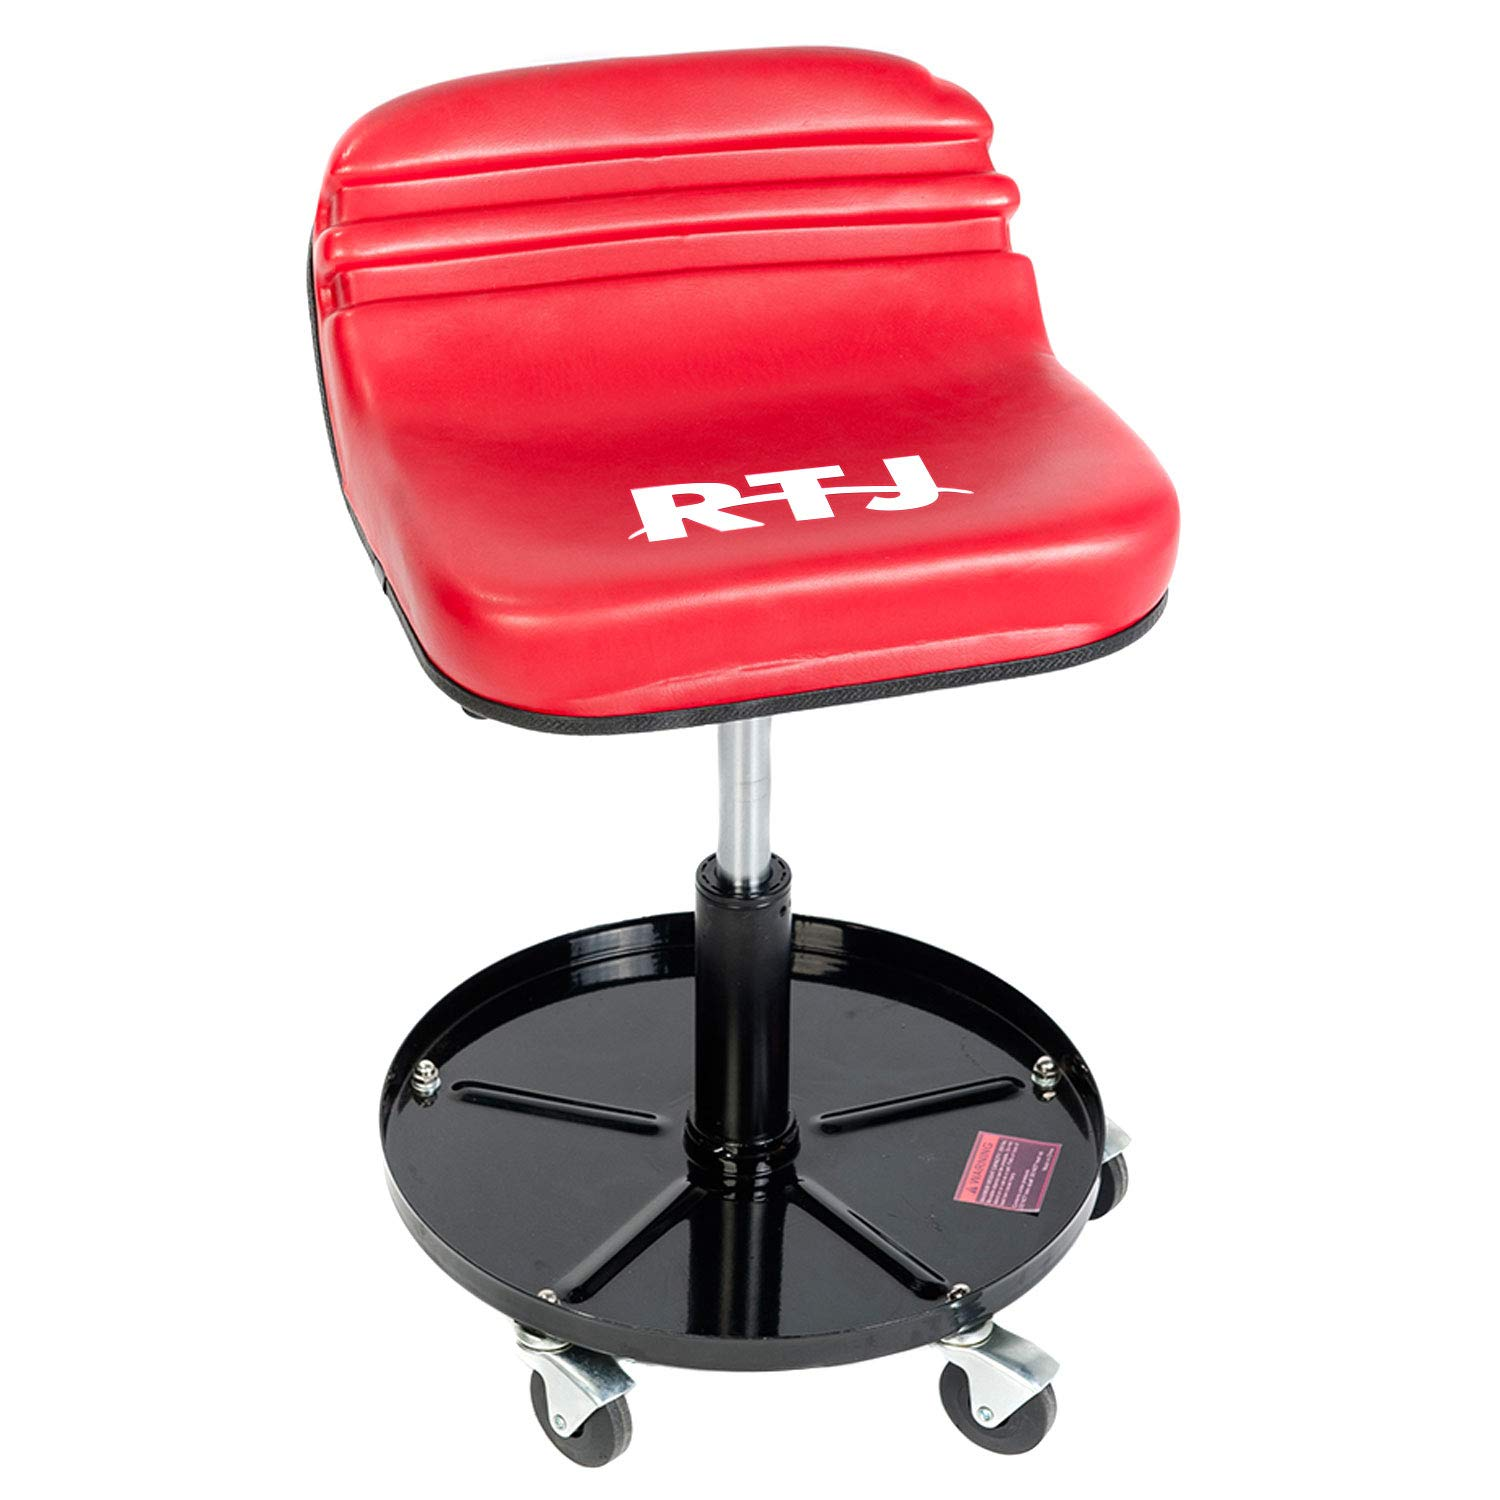 RTJ 300 lbs Capacity Pneumatic Mechanic Roller Seat Adjustable Rolling Stool, Red by RTJ (Image #1)